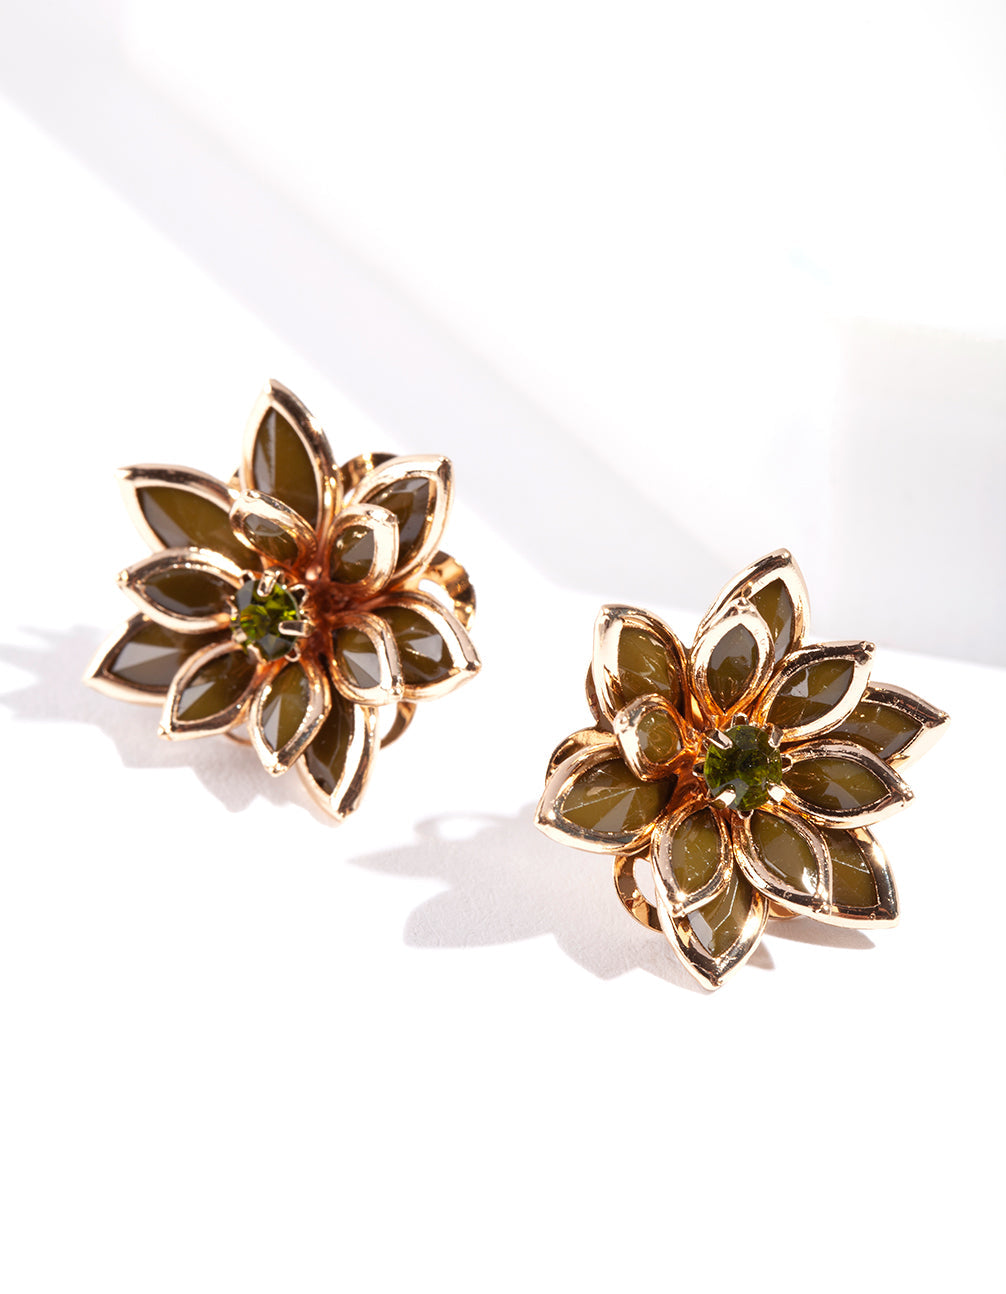 Khaki Crystal Flower Earrings